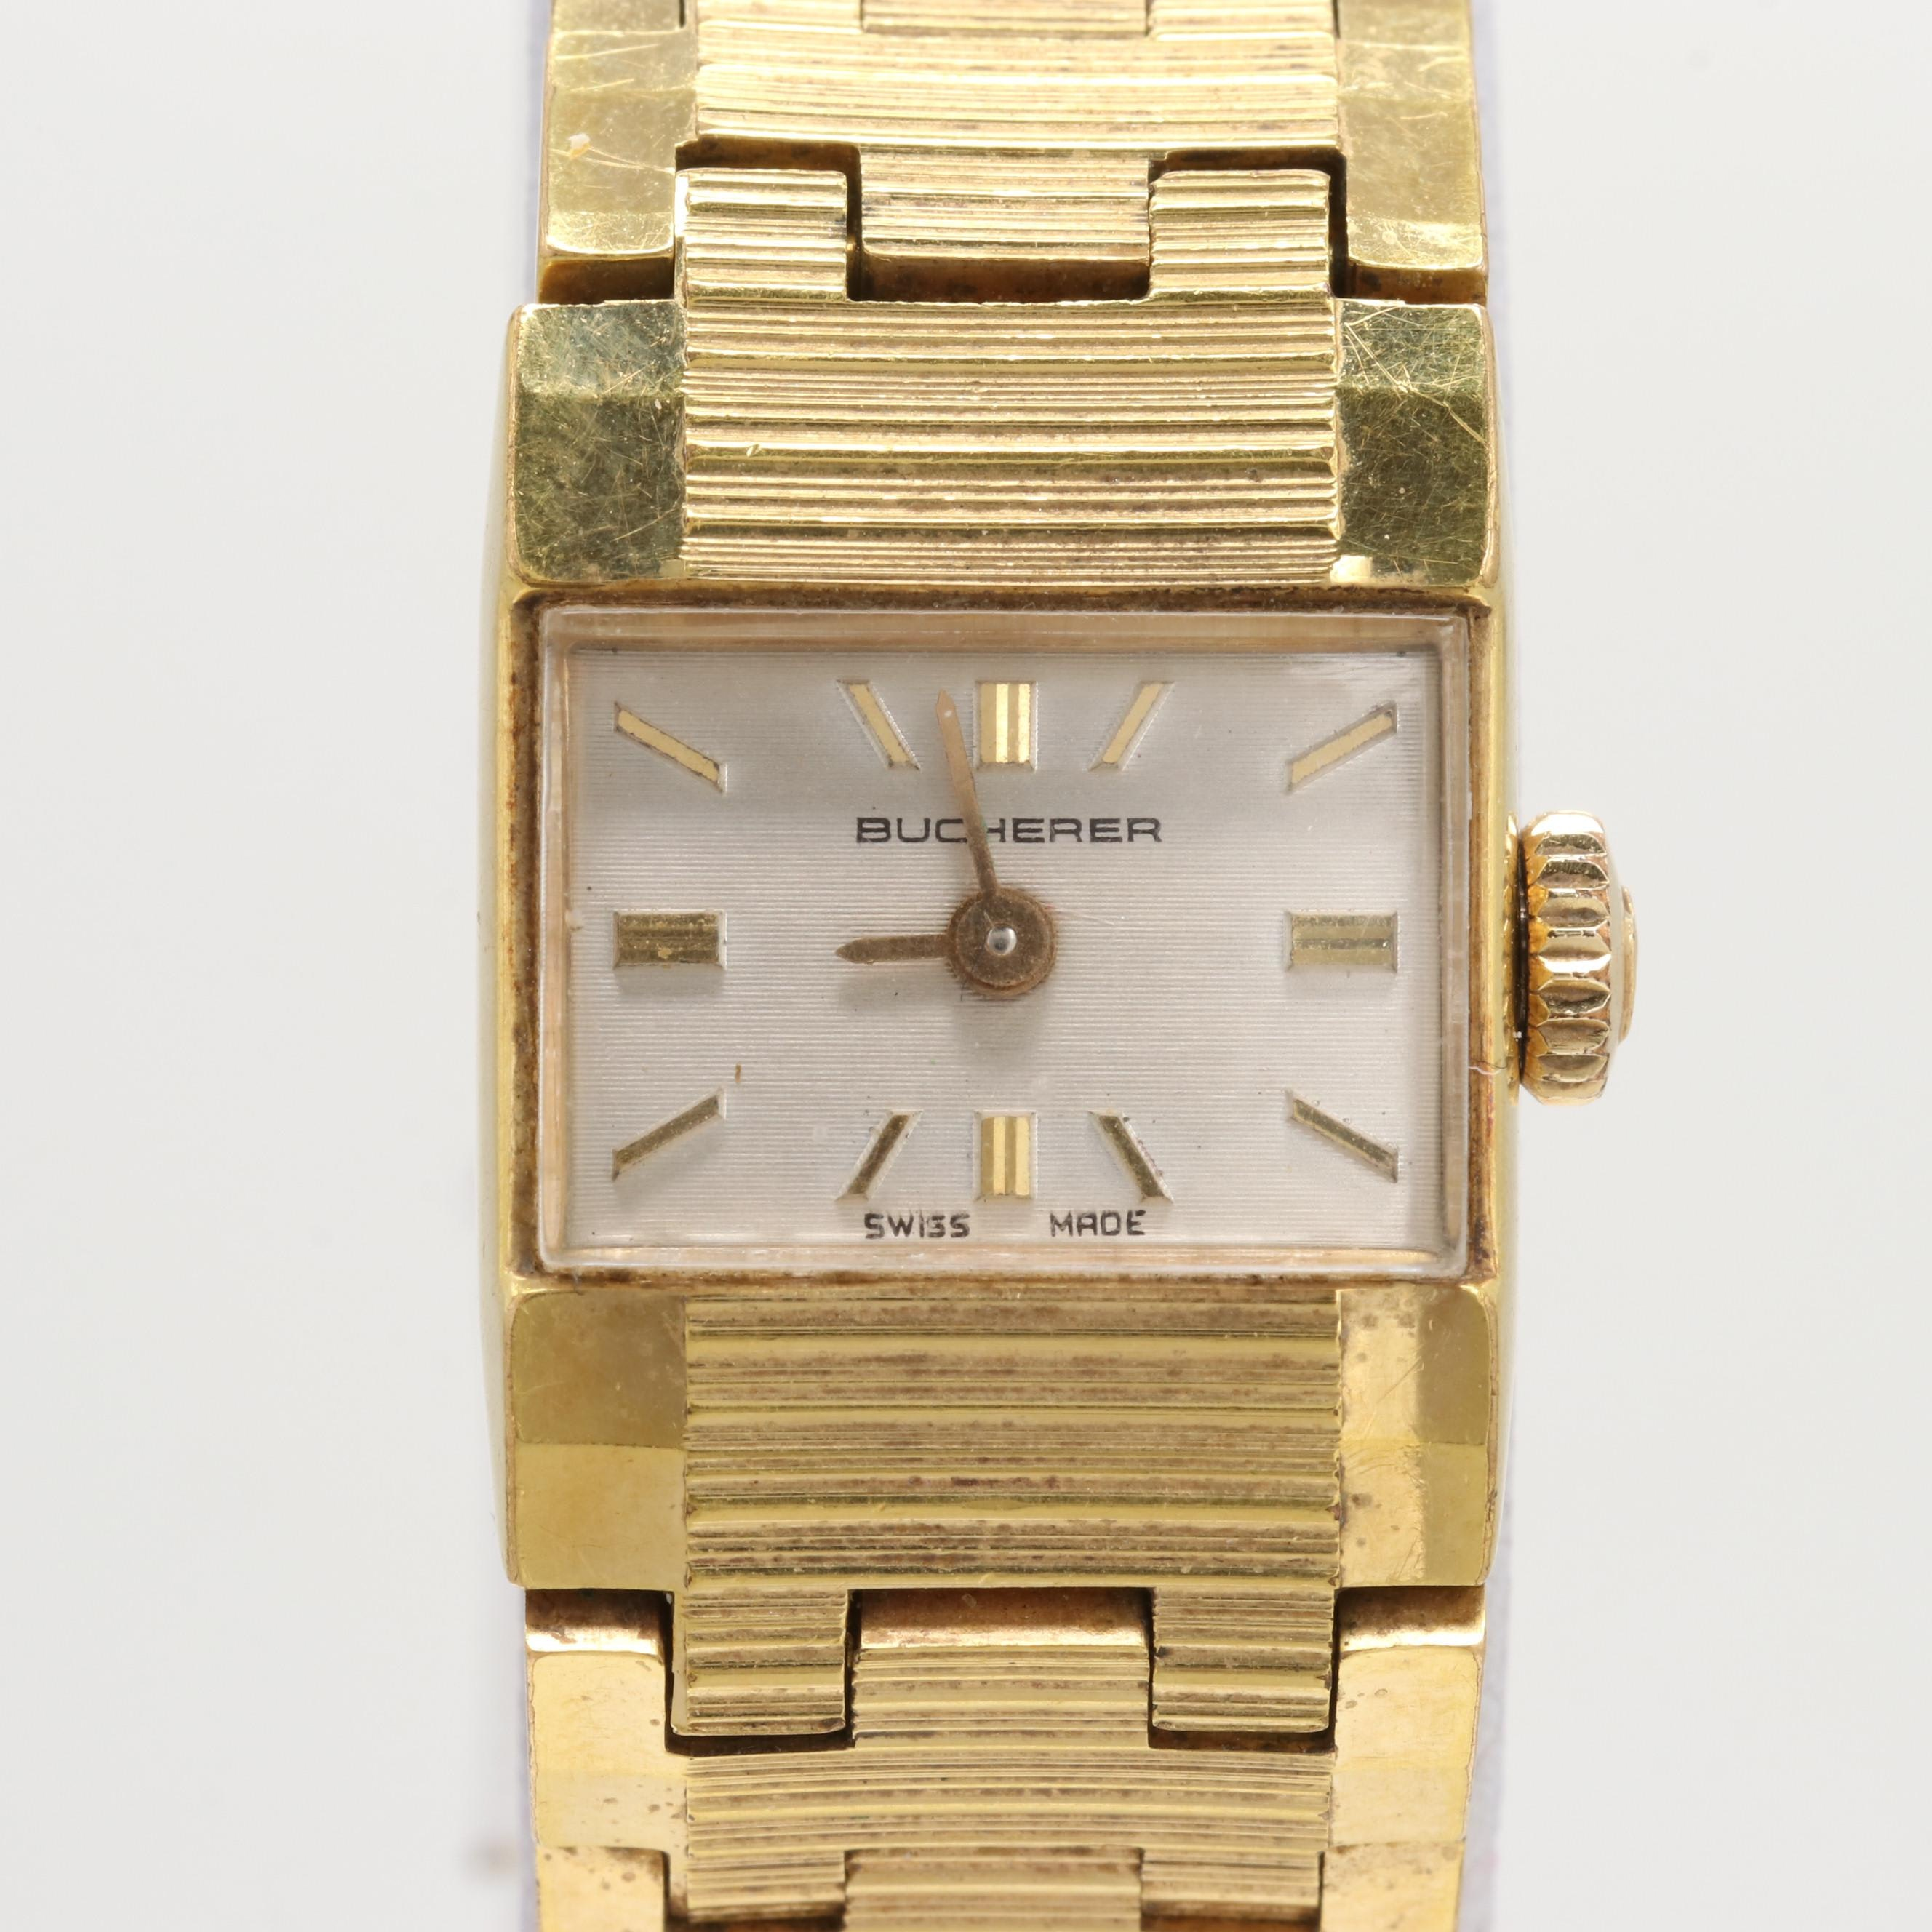 Vintage Bucherer Gold Wash on Stainless Steel Stem Wind Wristwatch